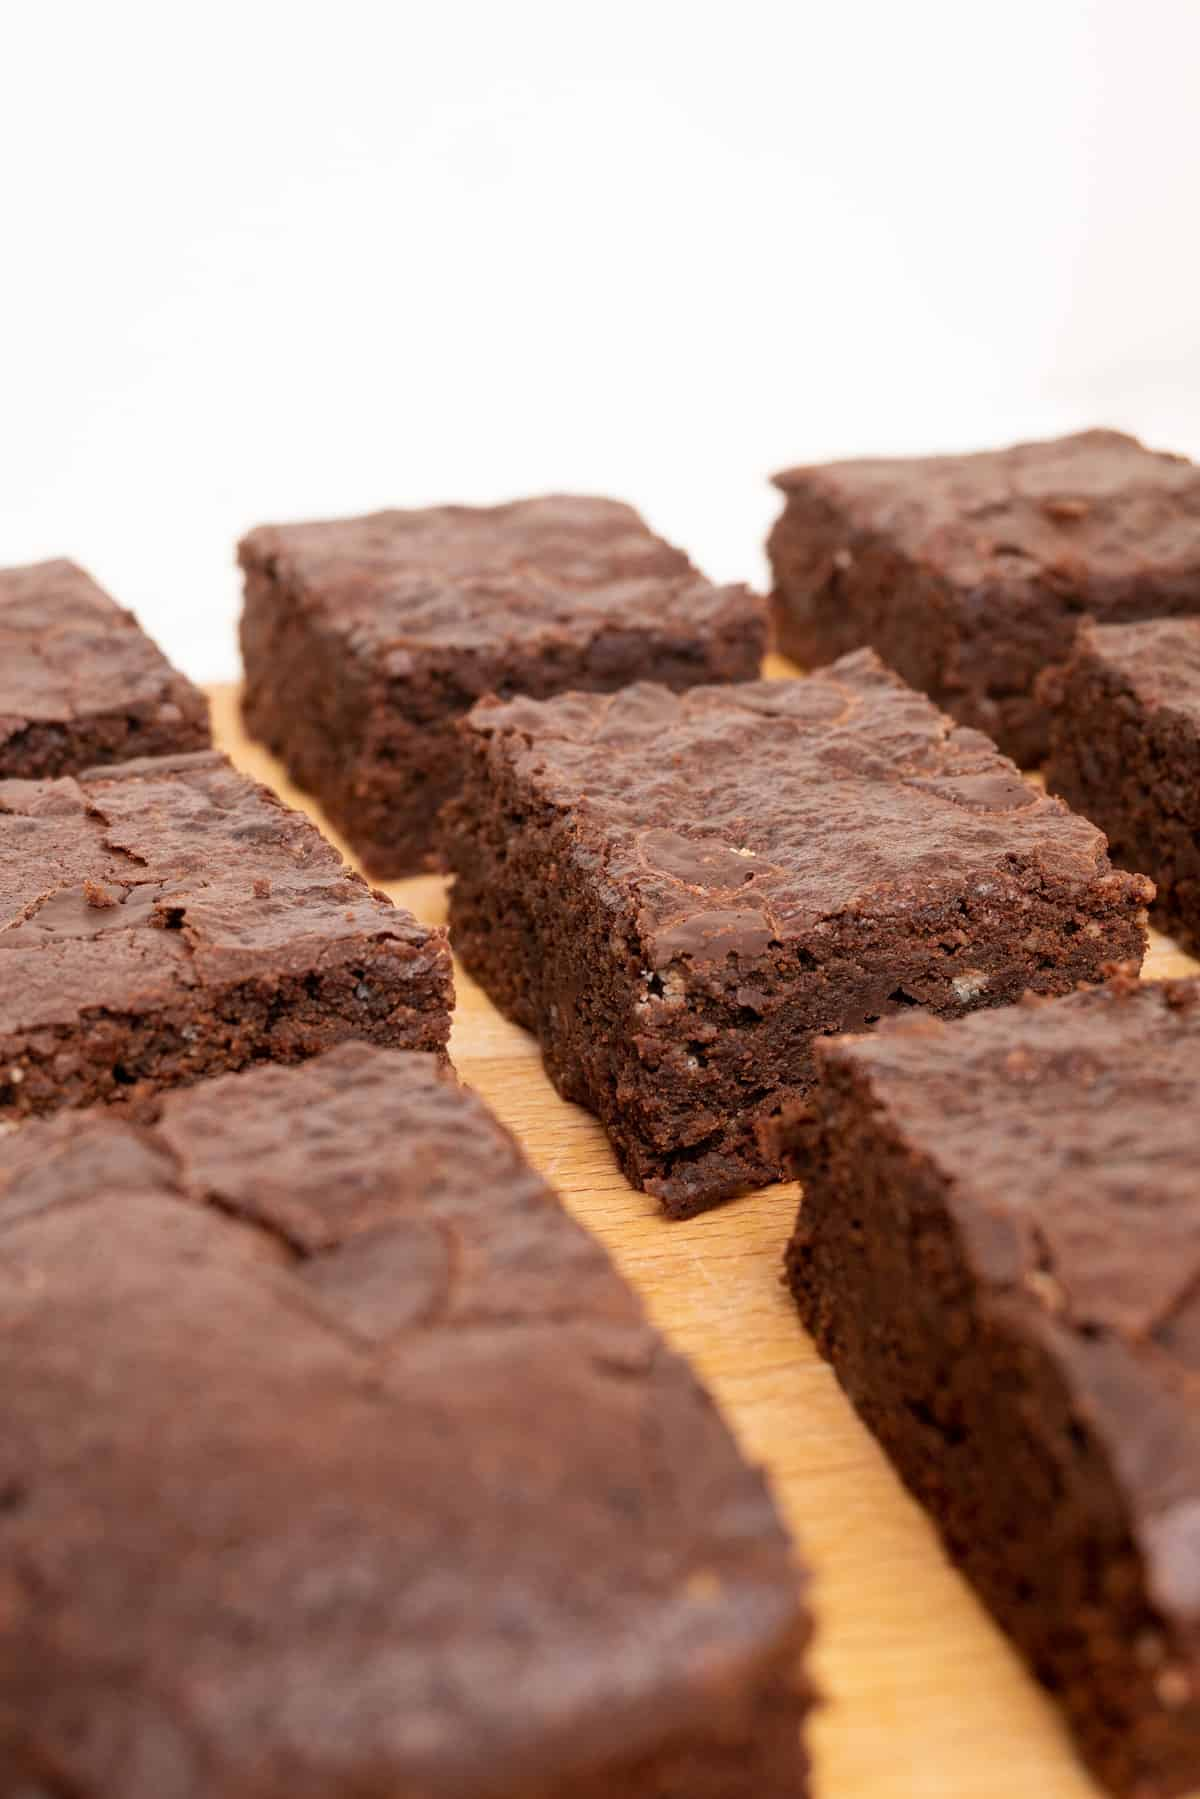 Dense and darkly chocolately pieces of brownie ready to enjoy!